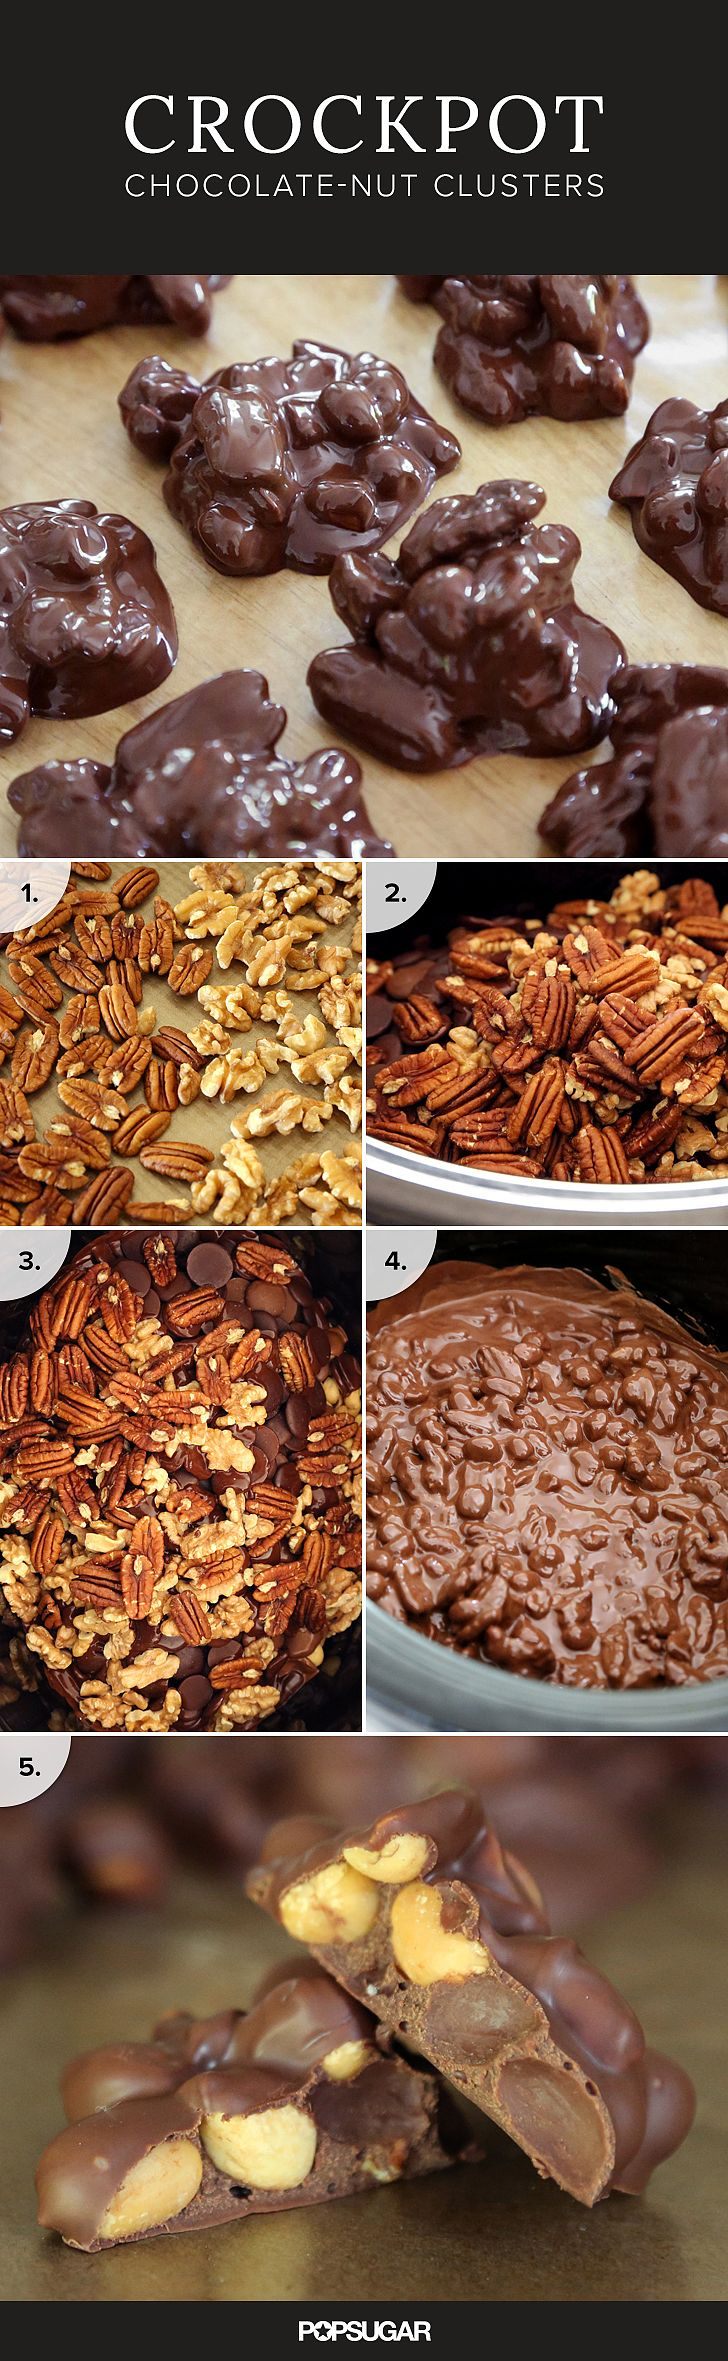 The crockpot never ceases to amaze: did you know you can use it to make CANDY? Yes, yes, you can.  All you need are nuts and chocolate (and your trusty slow-cooker) to be up to your ears in homemade goodies!